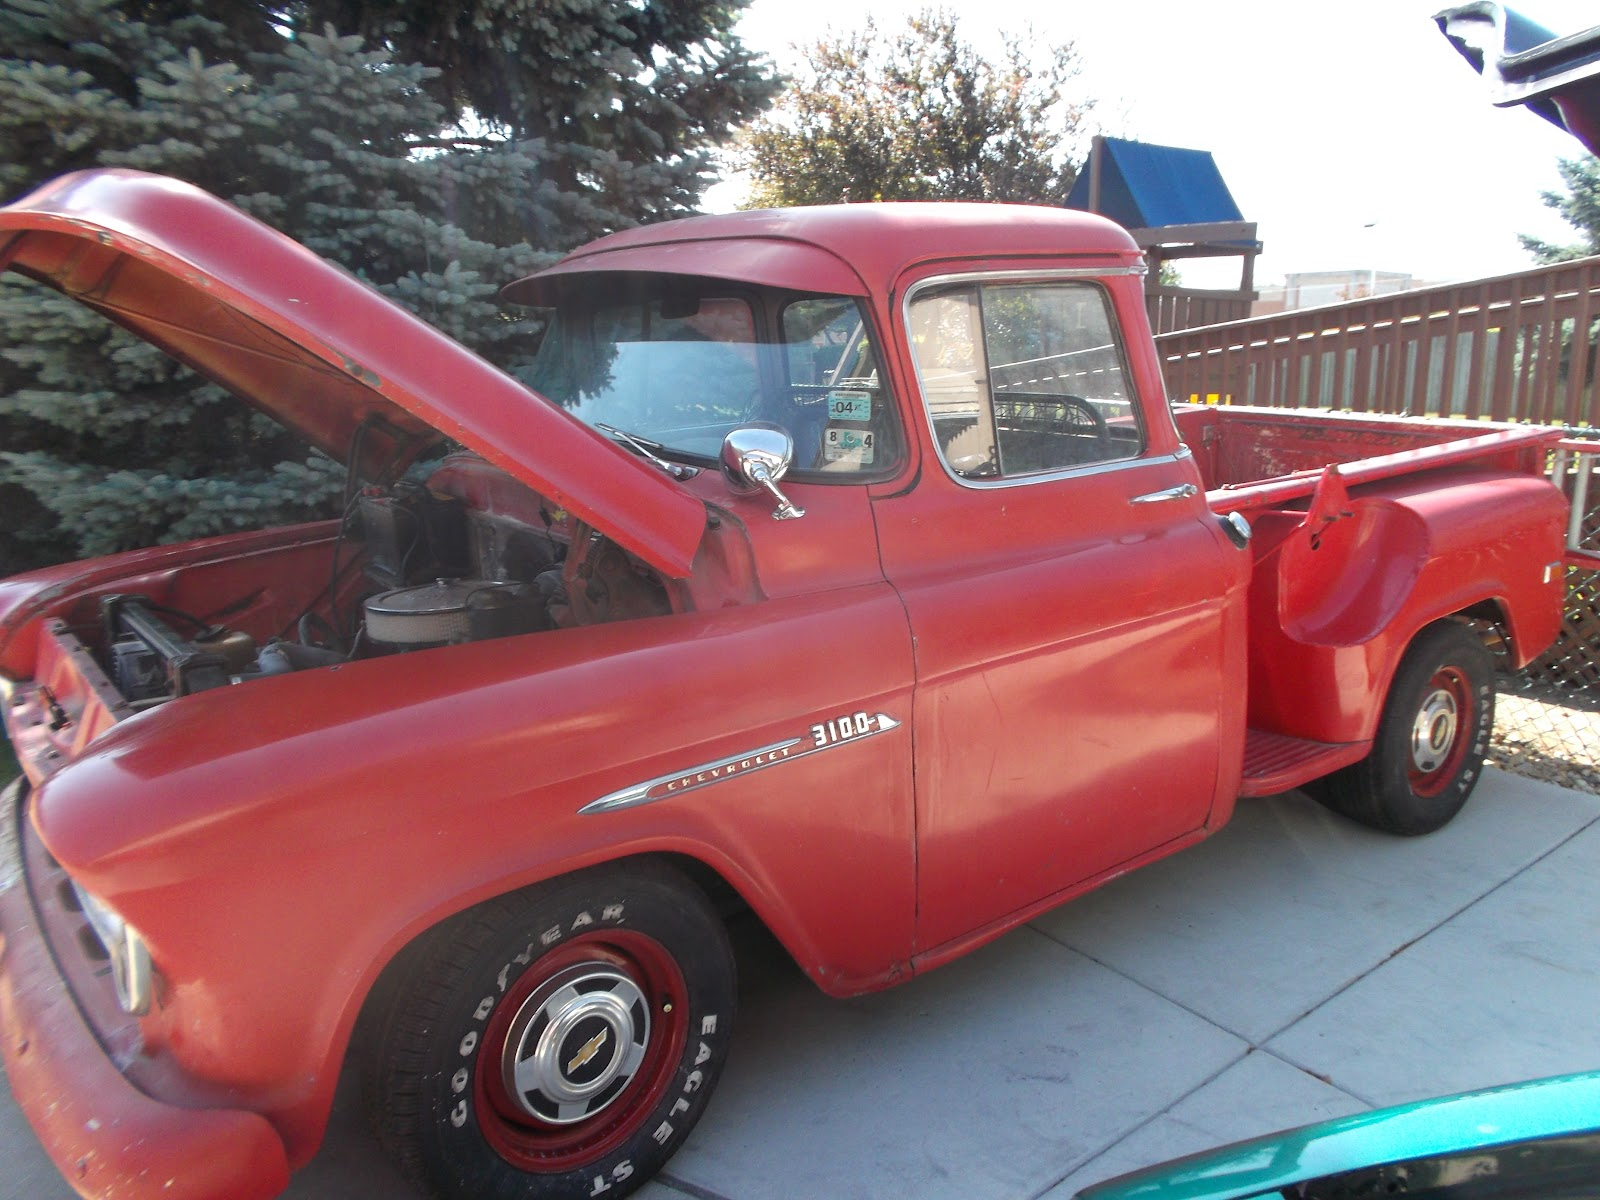 slackers cc chicago cool 55 chevy truck for sale. Black Bedroom Furniture Sets. Home Design Ideas